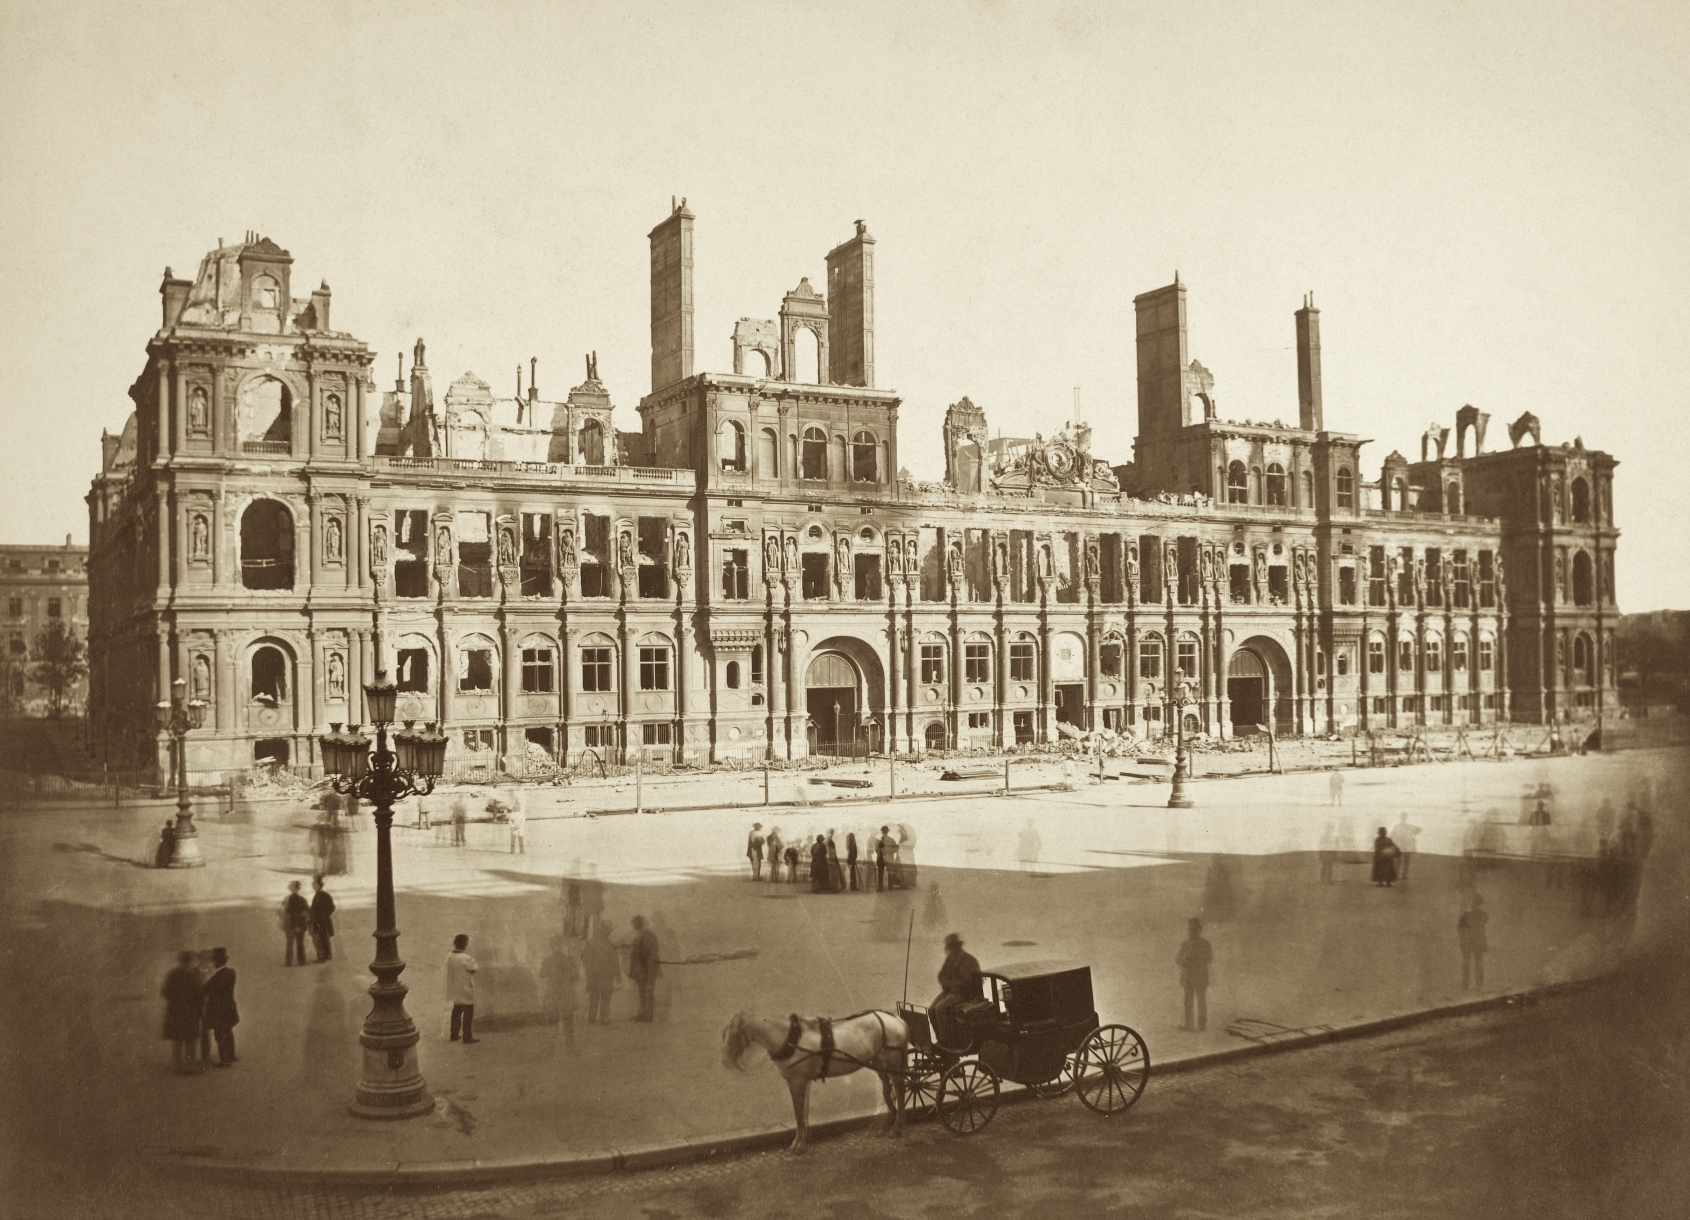 The Hôtel de Ville after the fire